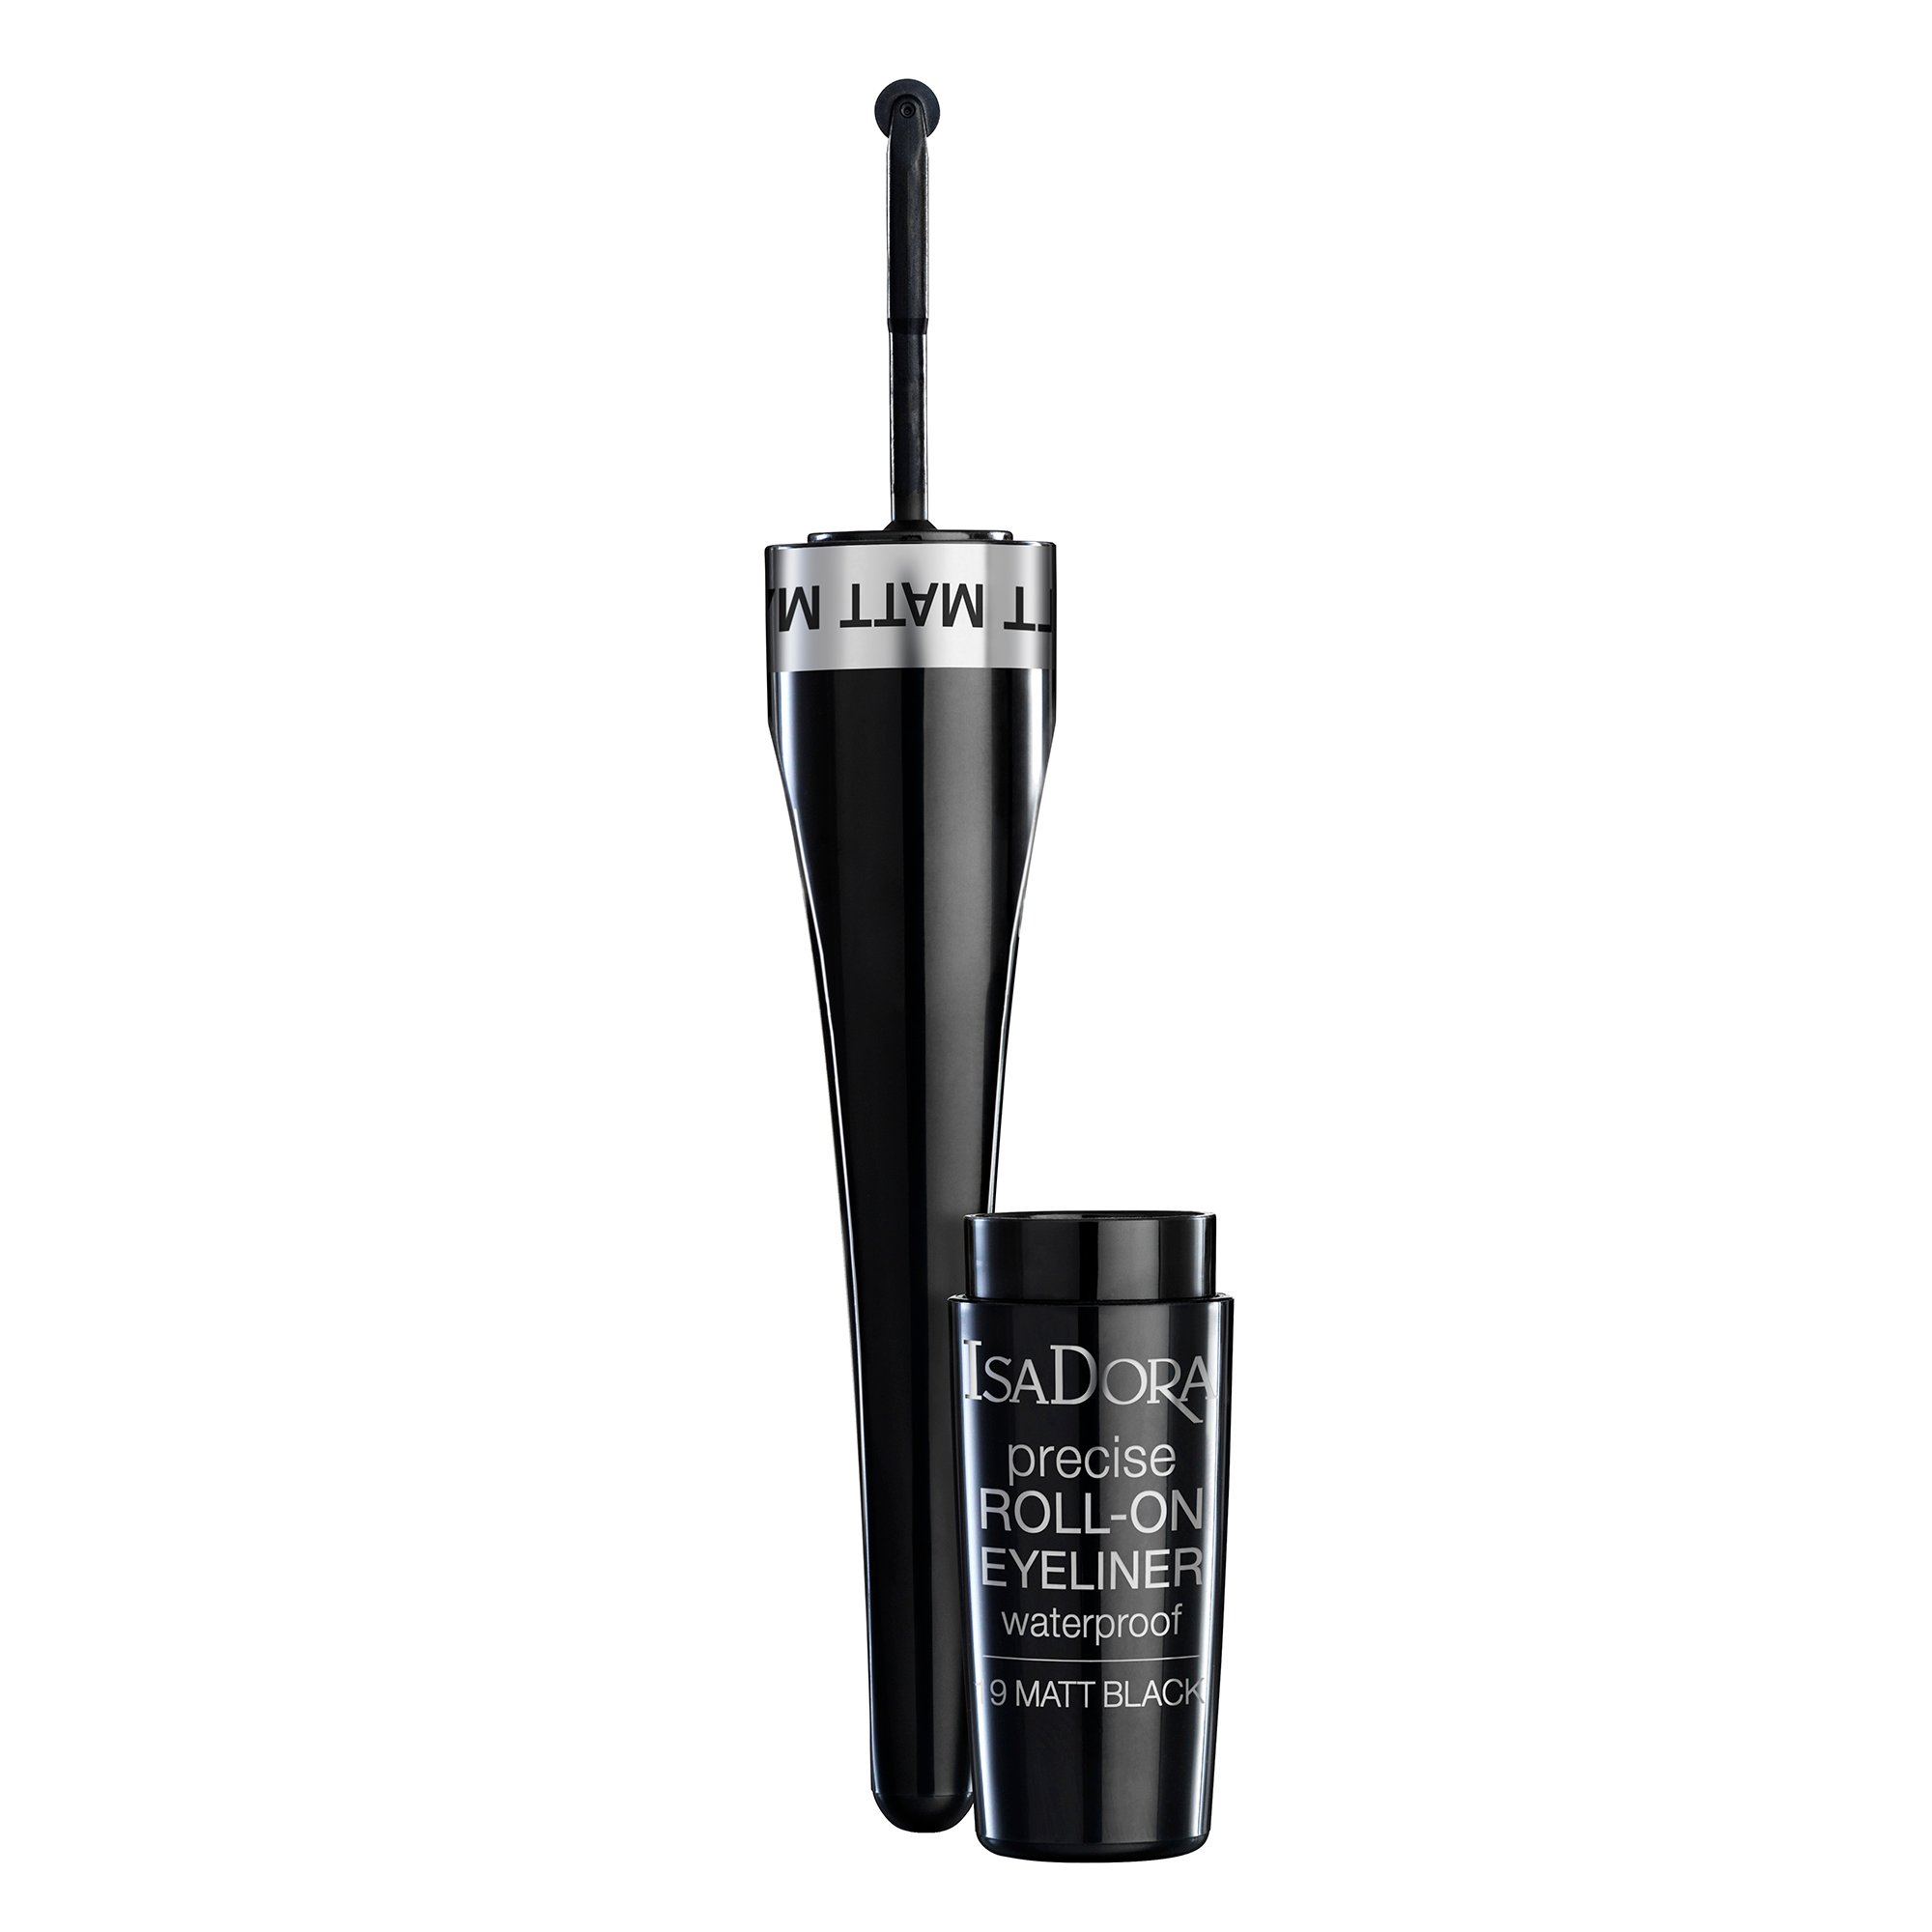 IsaDora - Precise Roll-On Eyeliner - 19 Matte Black